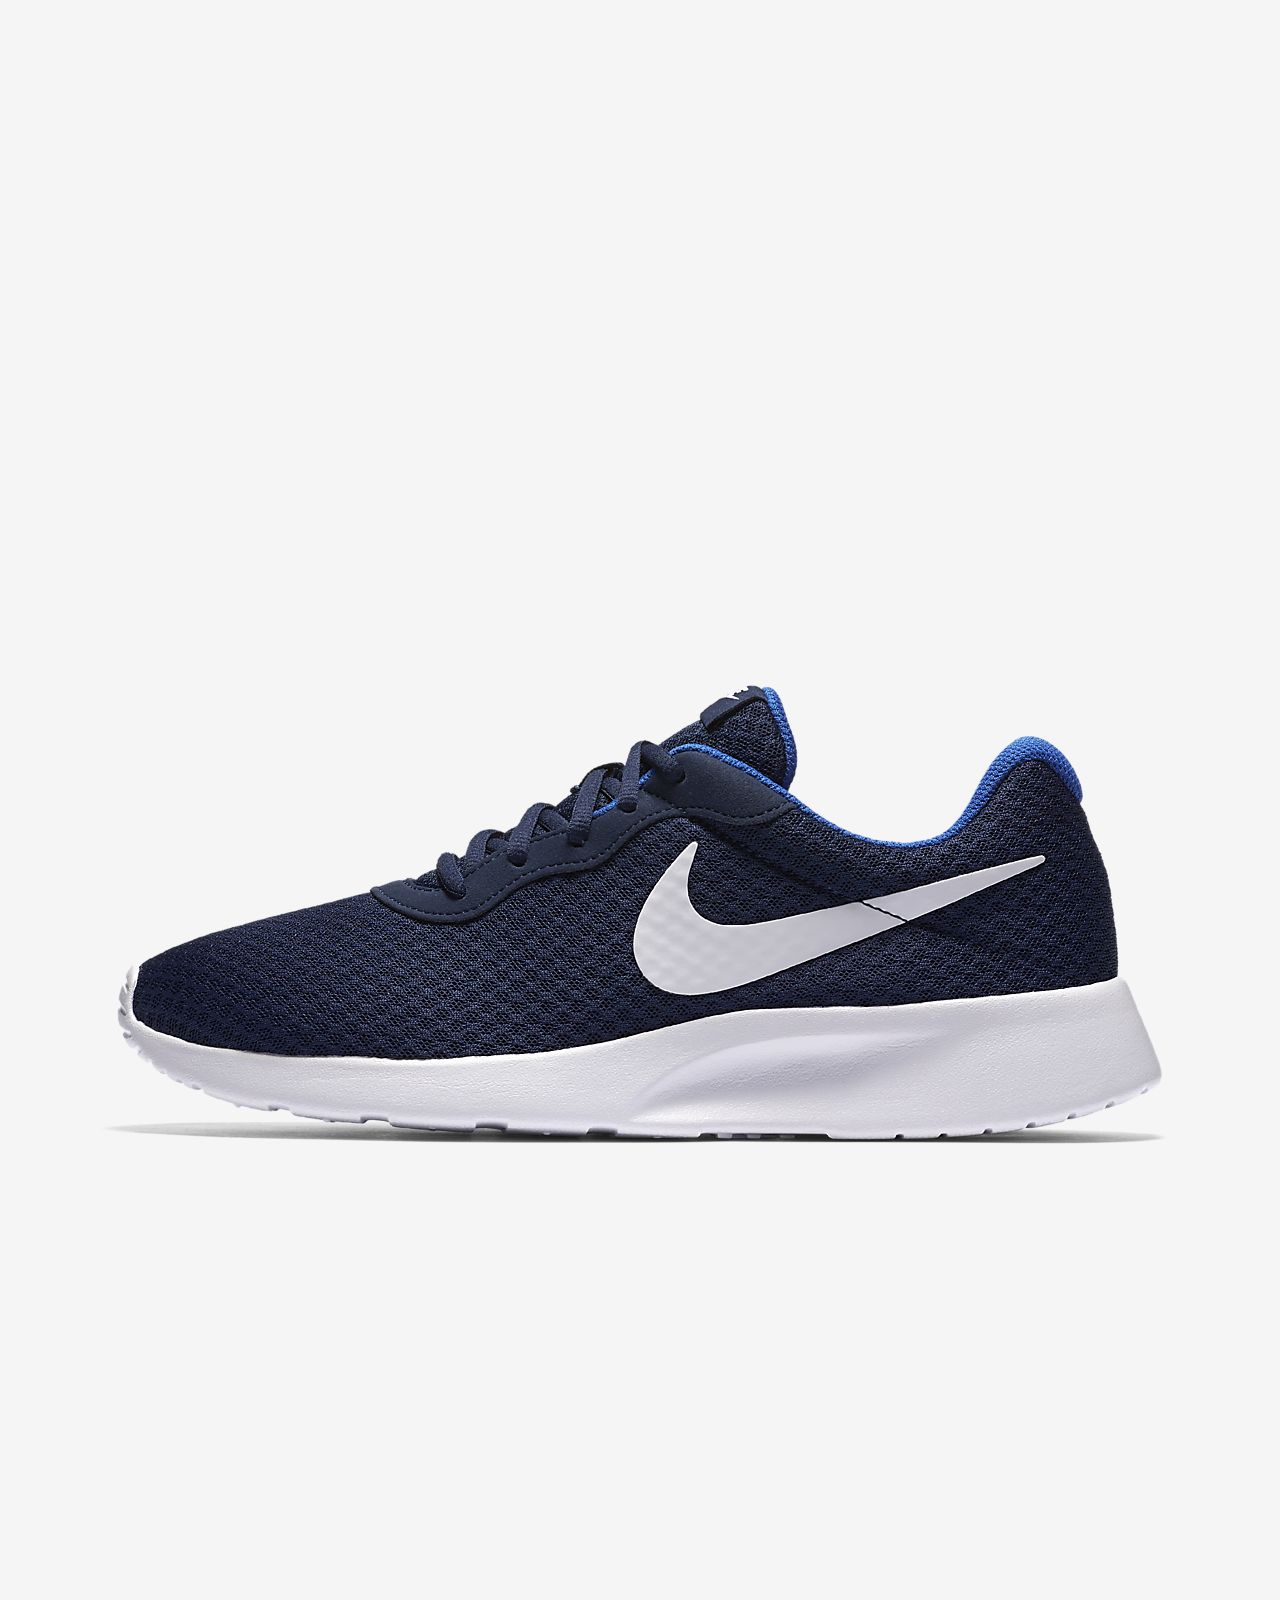 Chaussure Nike Tanjun pour Homme